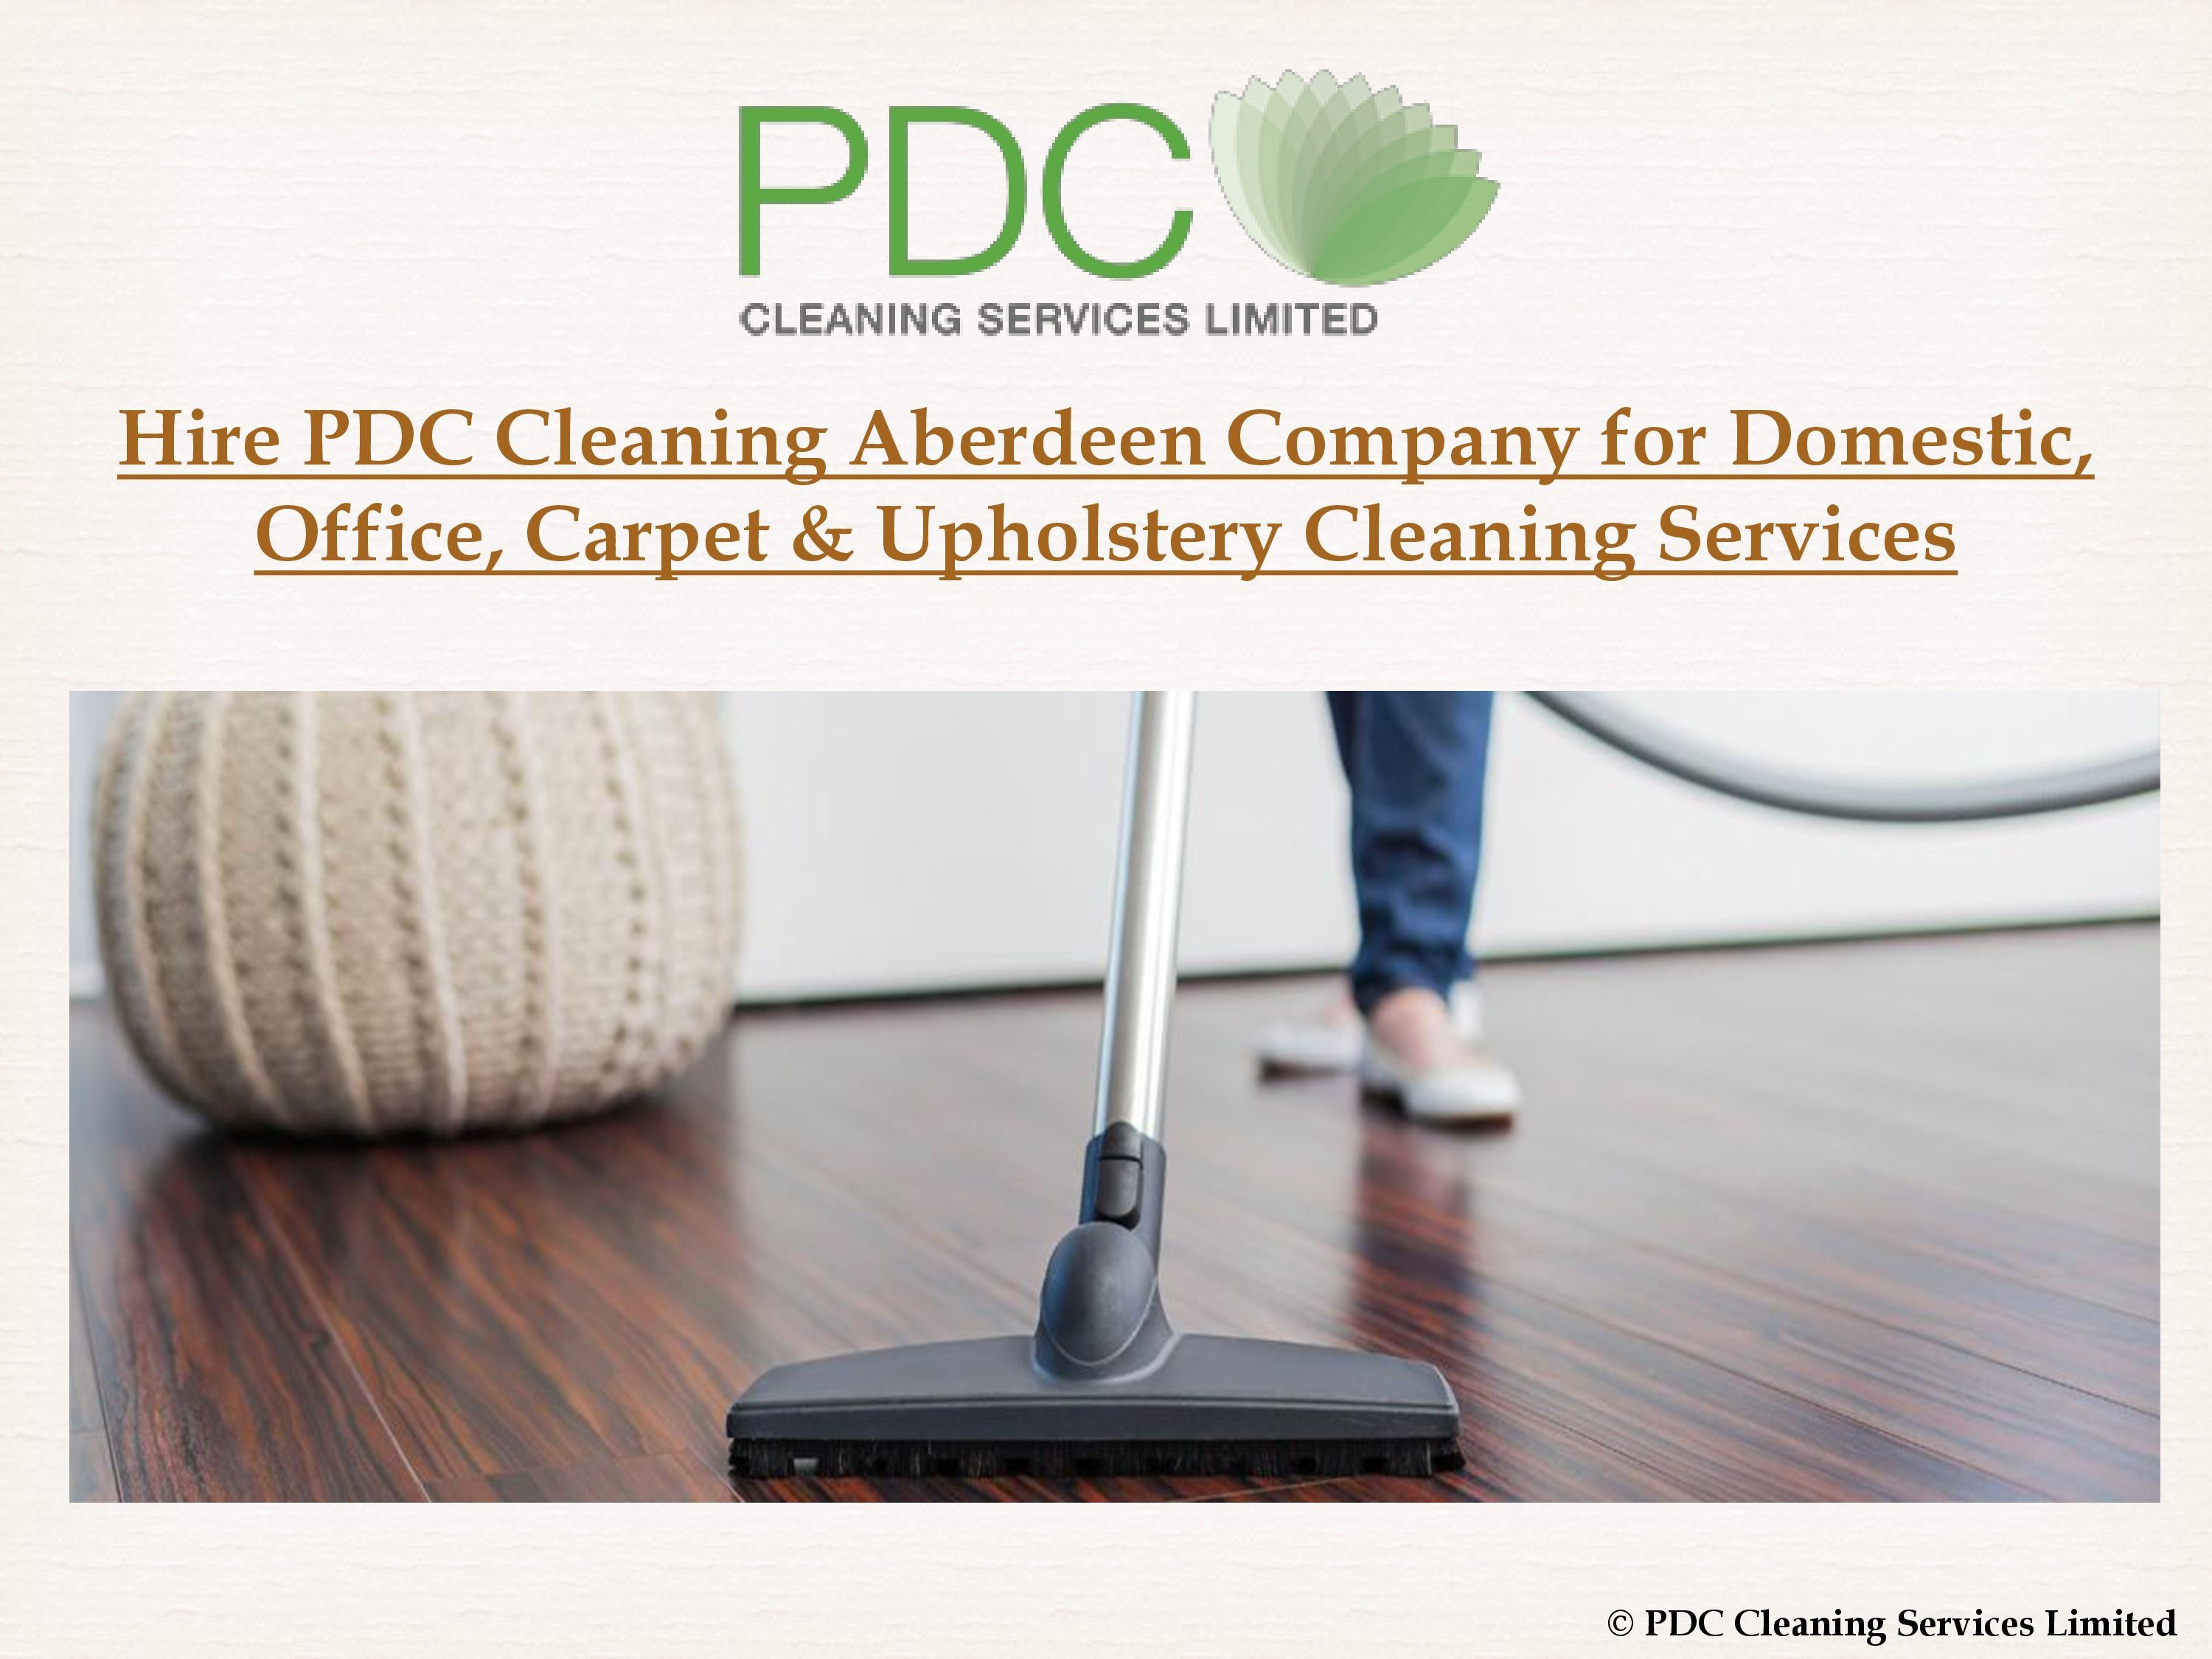 vacuum broom for hardwood floors of best professional home cleaning services offers carpet cleaning pertaining to best professional home cleaning services offers carpet cleaning upholstery cleaning tiling flooring